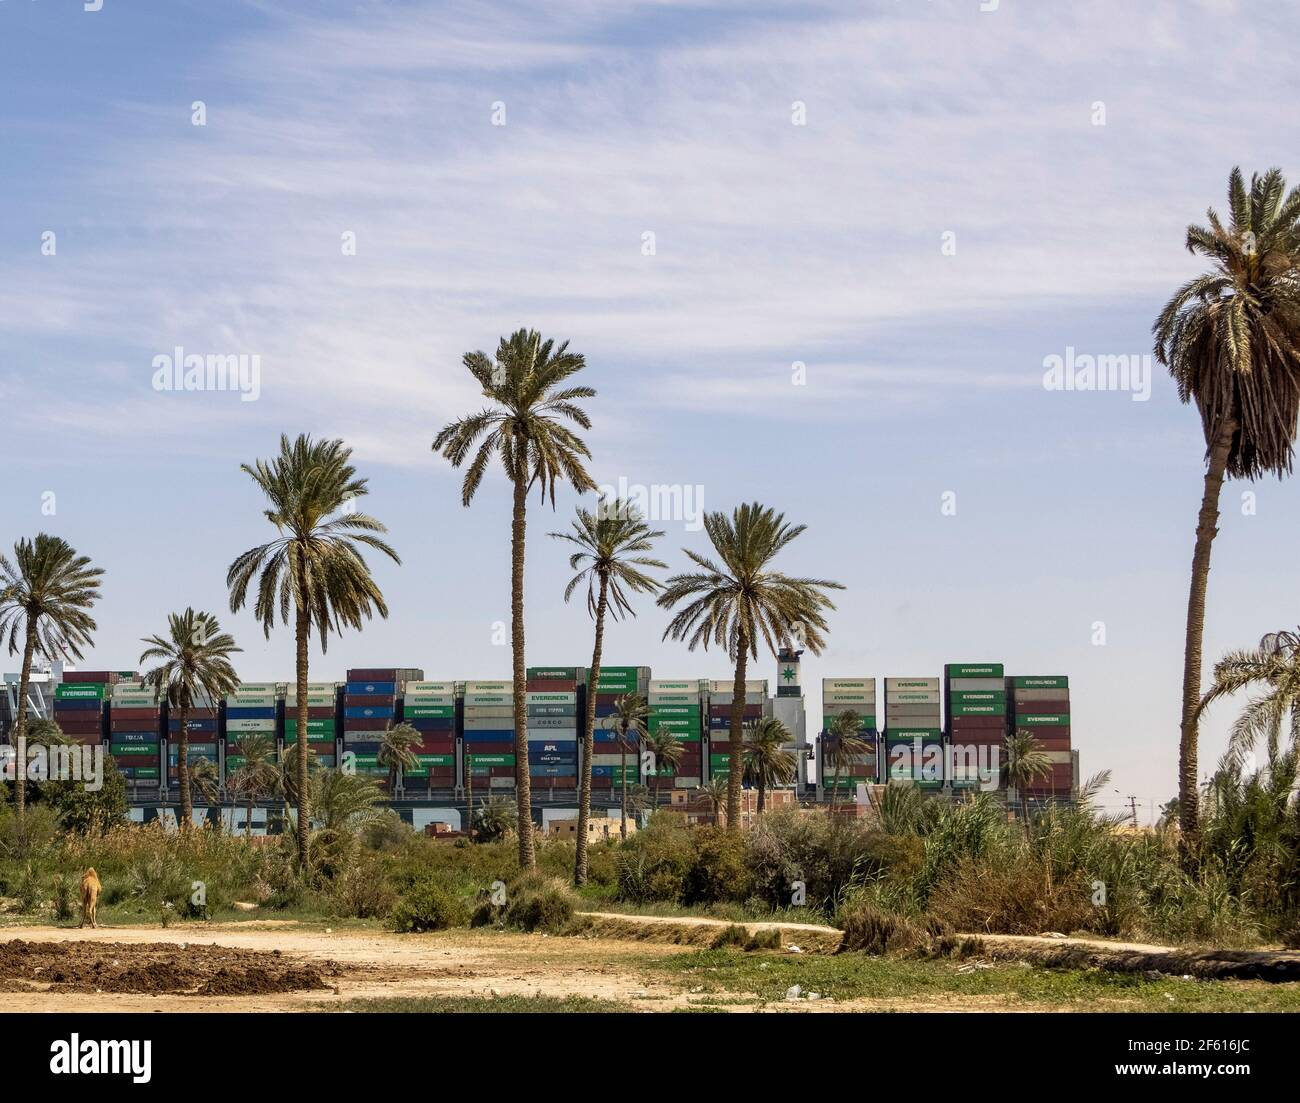 Manshiat al-Rahula village, near Suez, Egypt. 29 Mar 2021. The Evergiven finally floats parallel to the Suez canal while a camel looks on. B. O'Kane/A Stock Photo